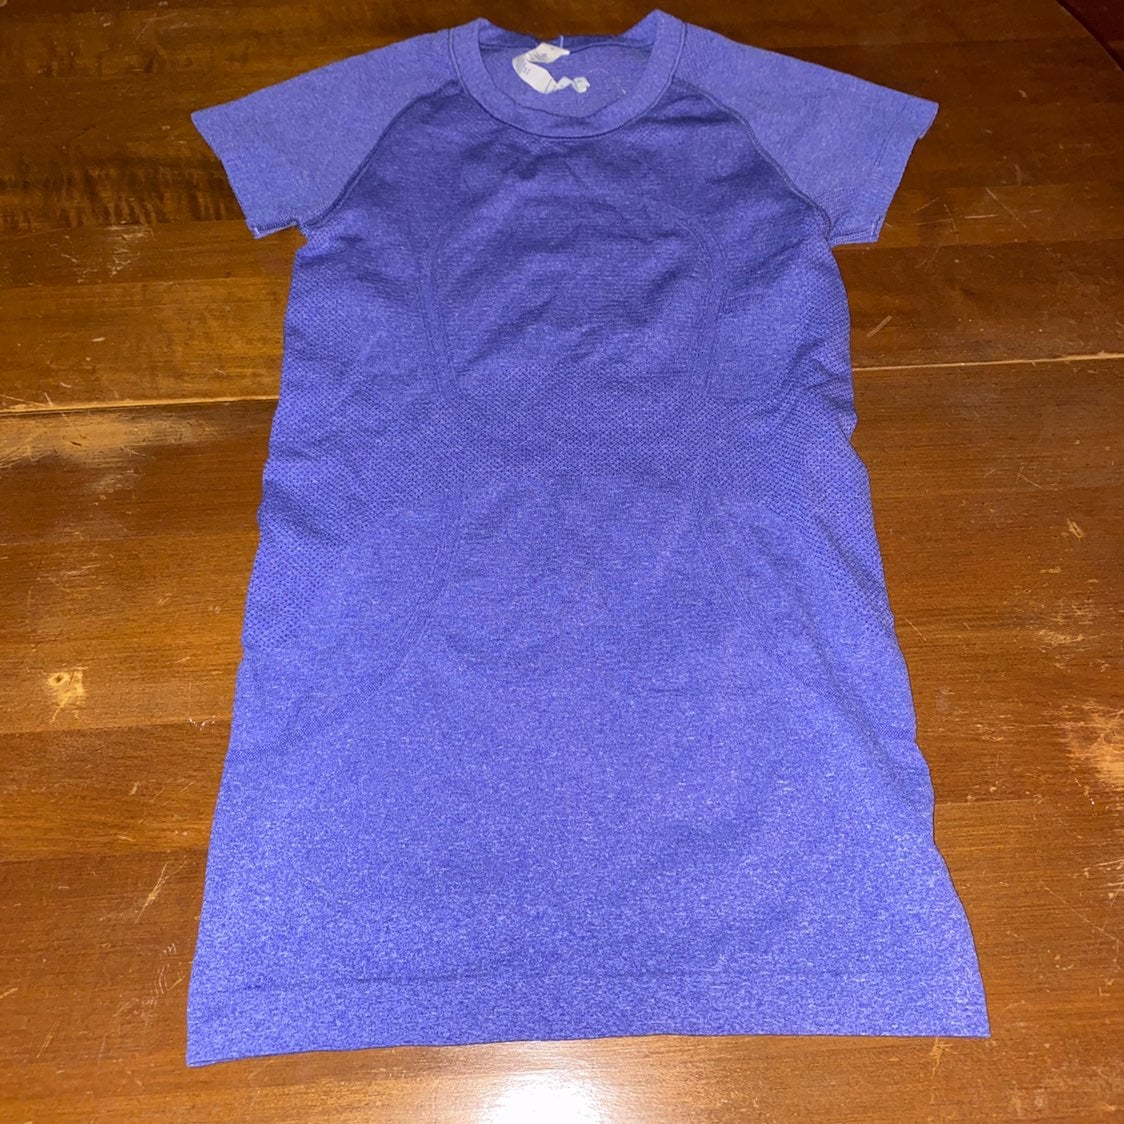 Lululemon Swiftly Tech Short Sleeve 4